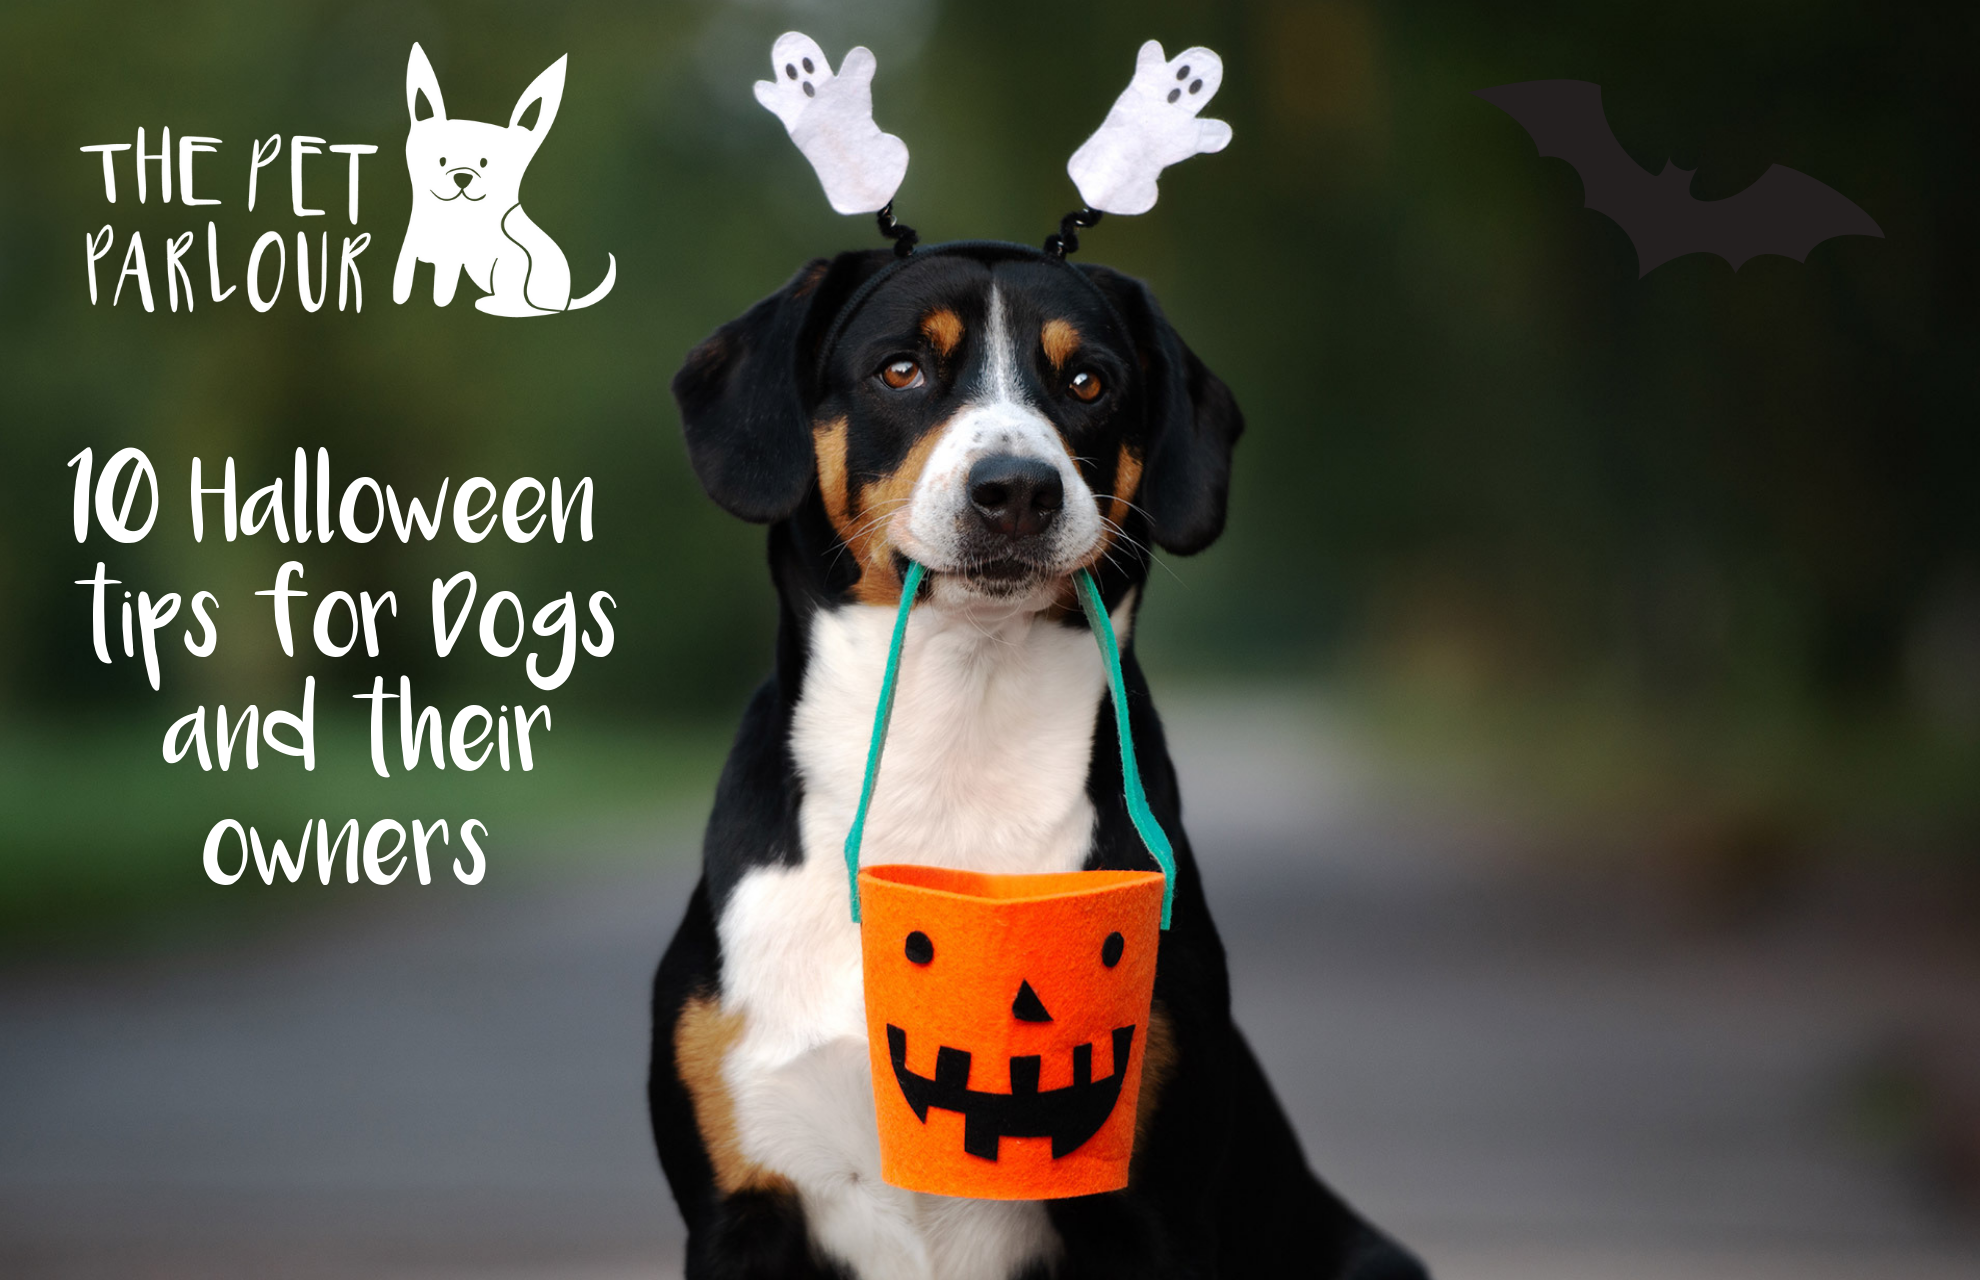 10-halloween-tips-dog-owners.png?v=1539160800